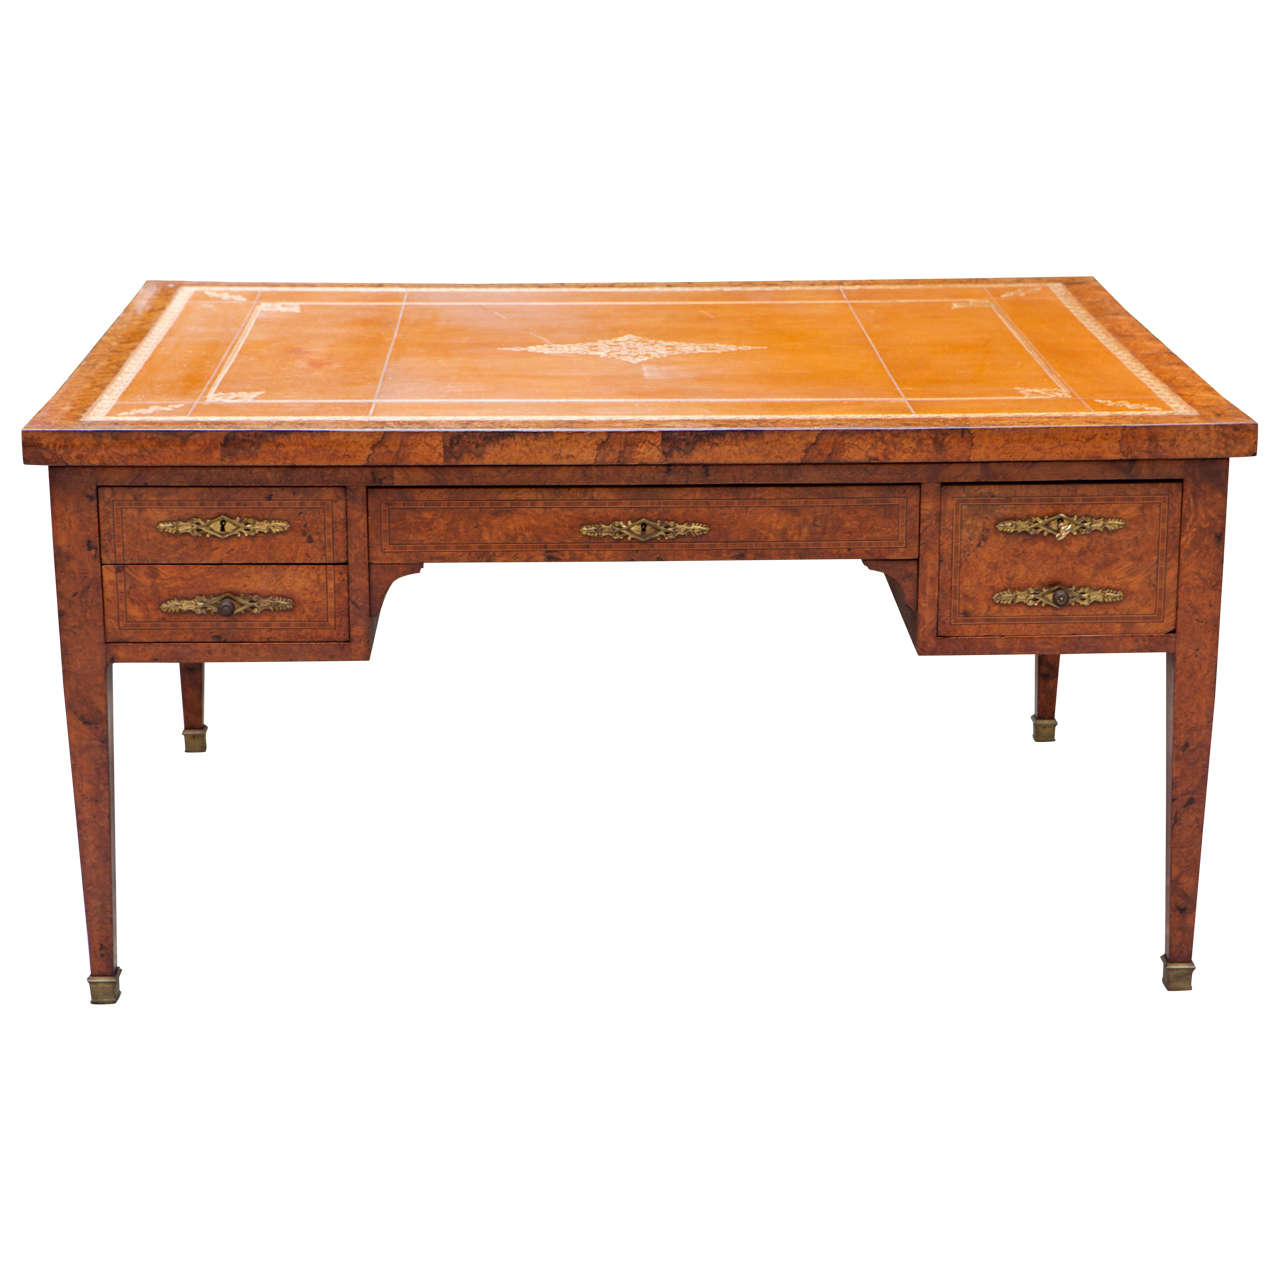 19th Century French Burled Walnut Partners Desk with Leather Top